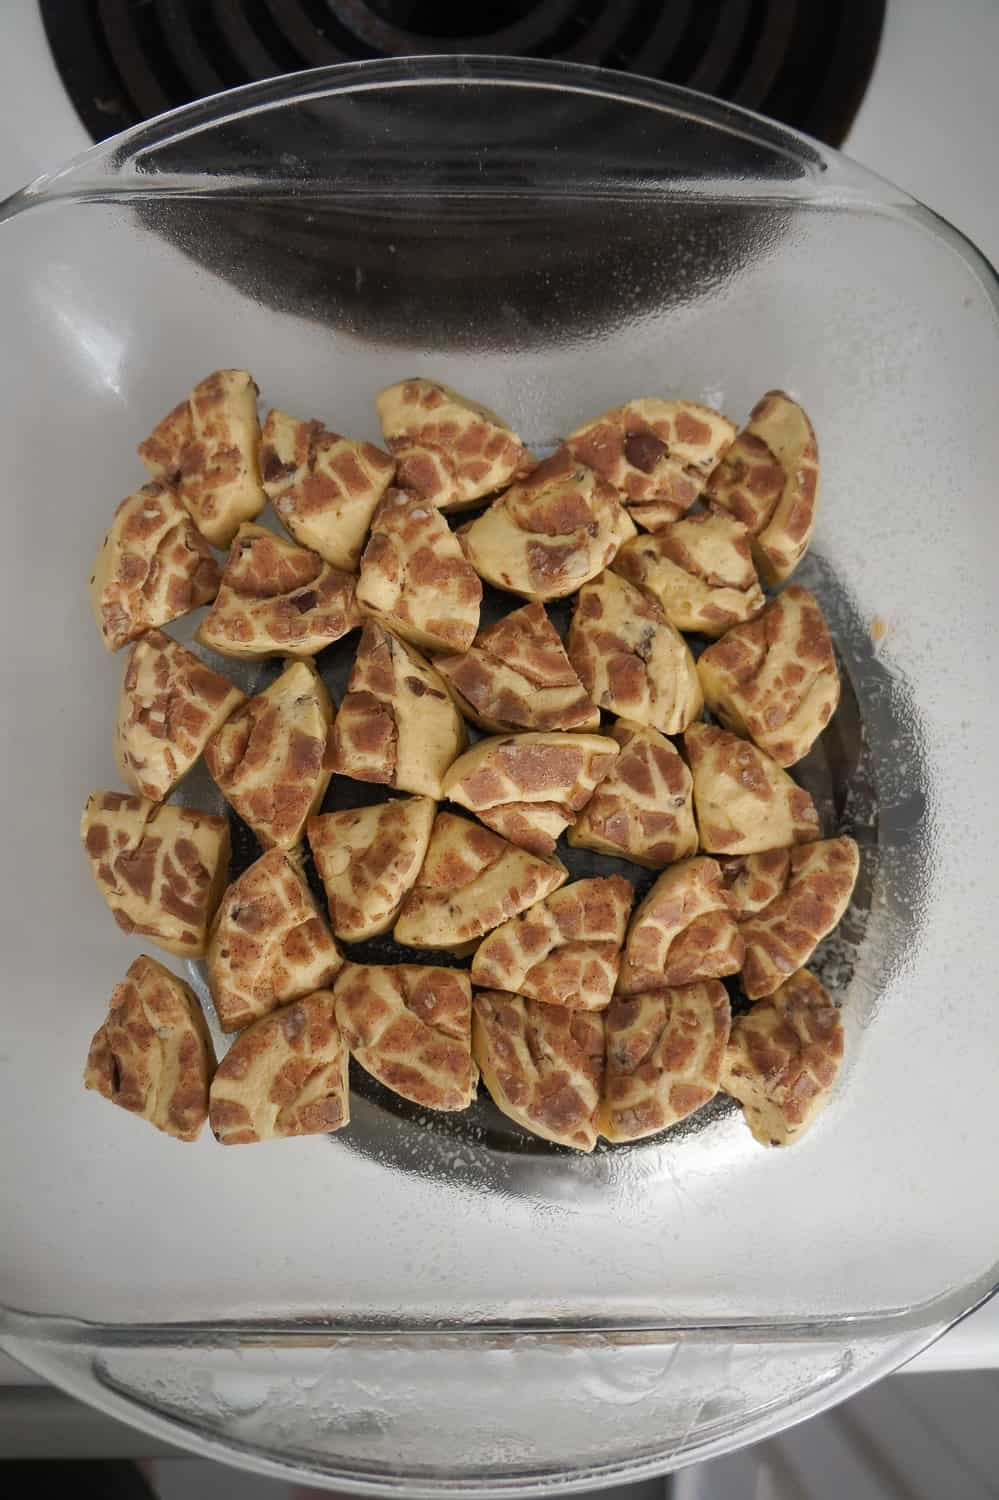 pieces of pillsbury cinnamon roll dough in the bottom of a baking dish